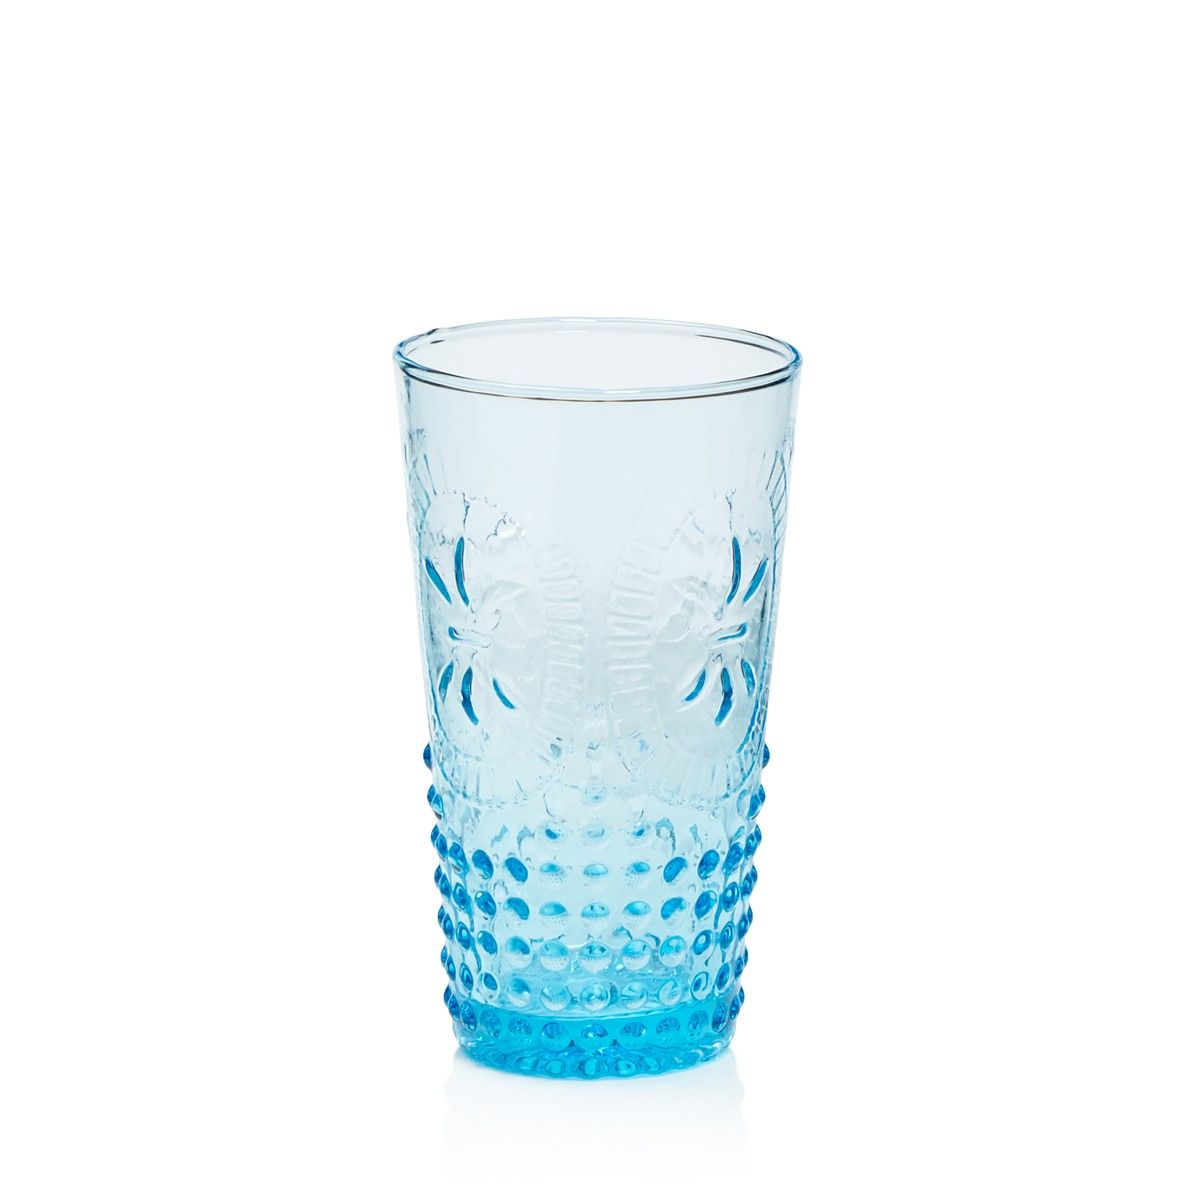 This luminous blue mouthblown glassware was crafted by Home ...